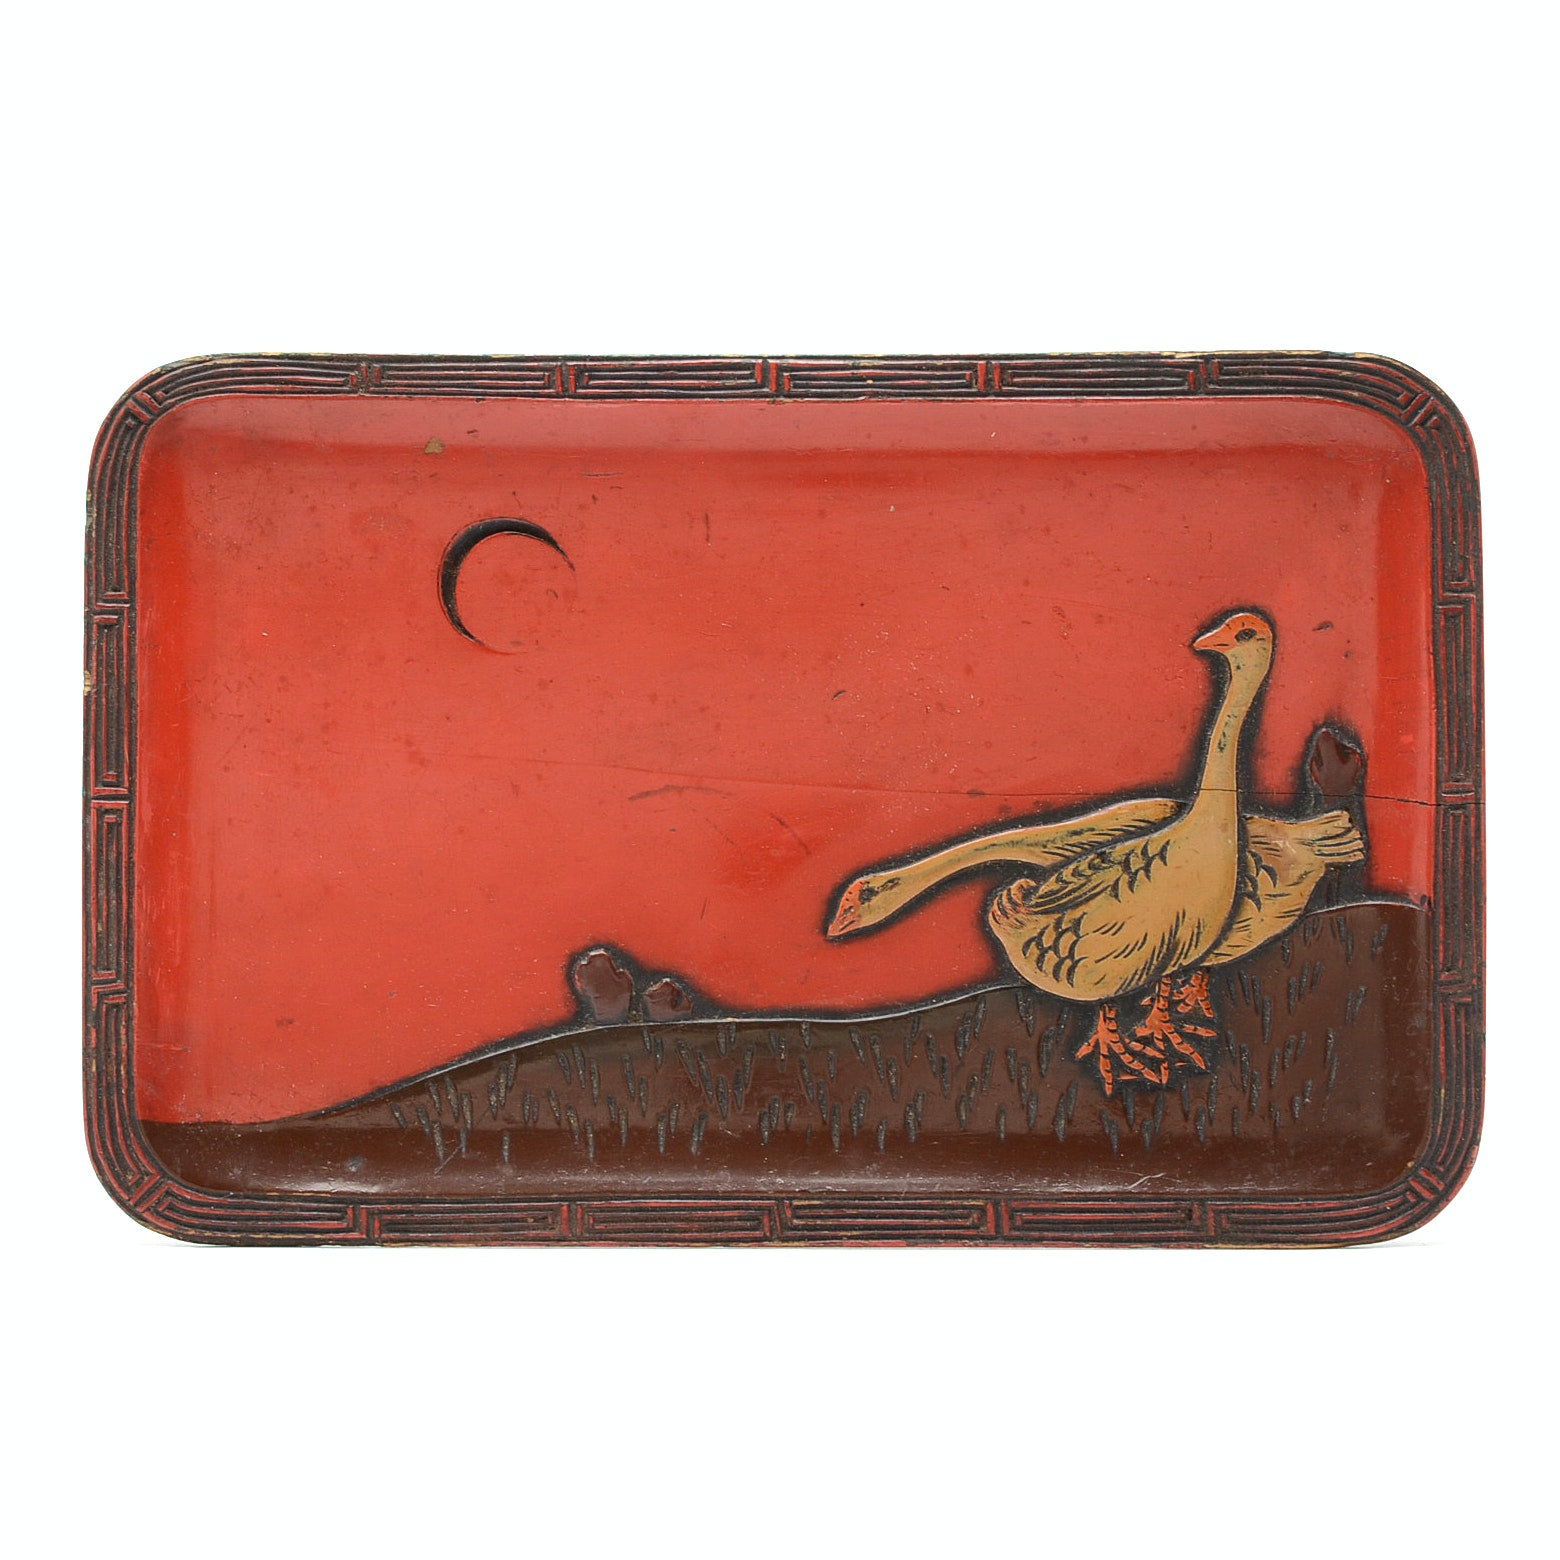 Early 20th Century Japanese Lacquered Tray